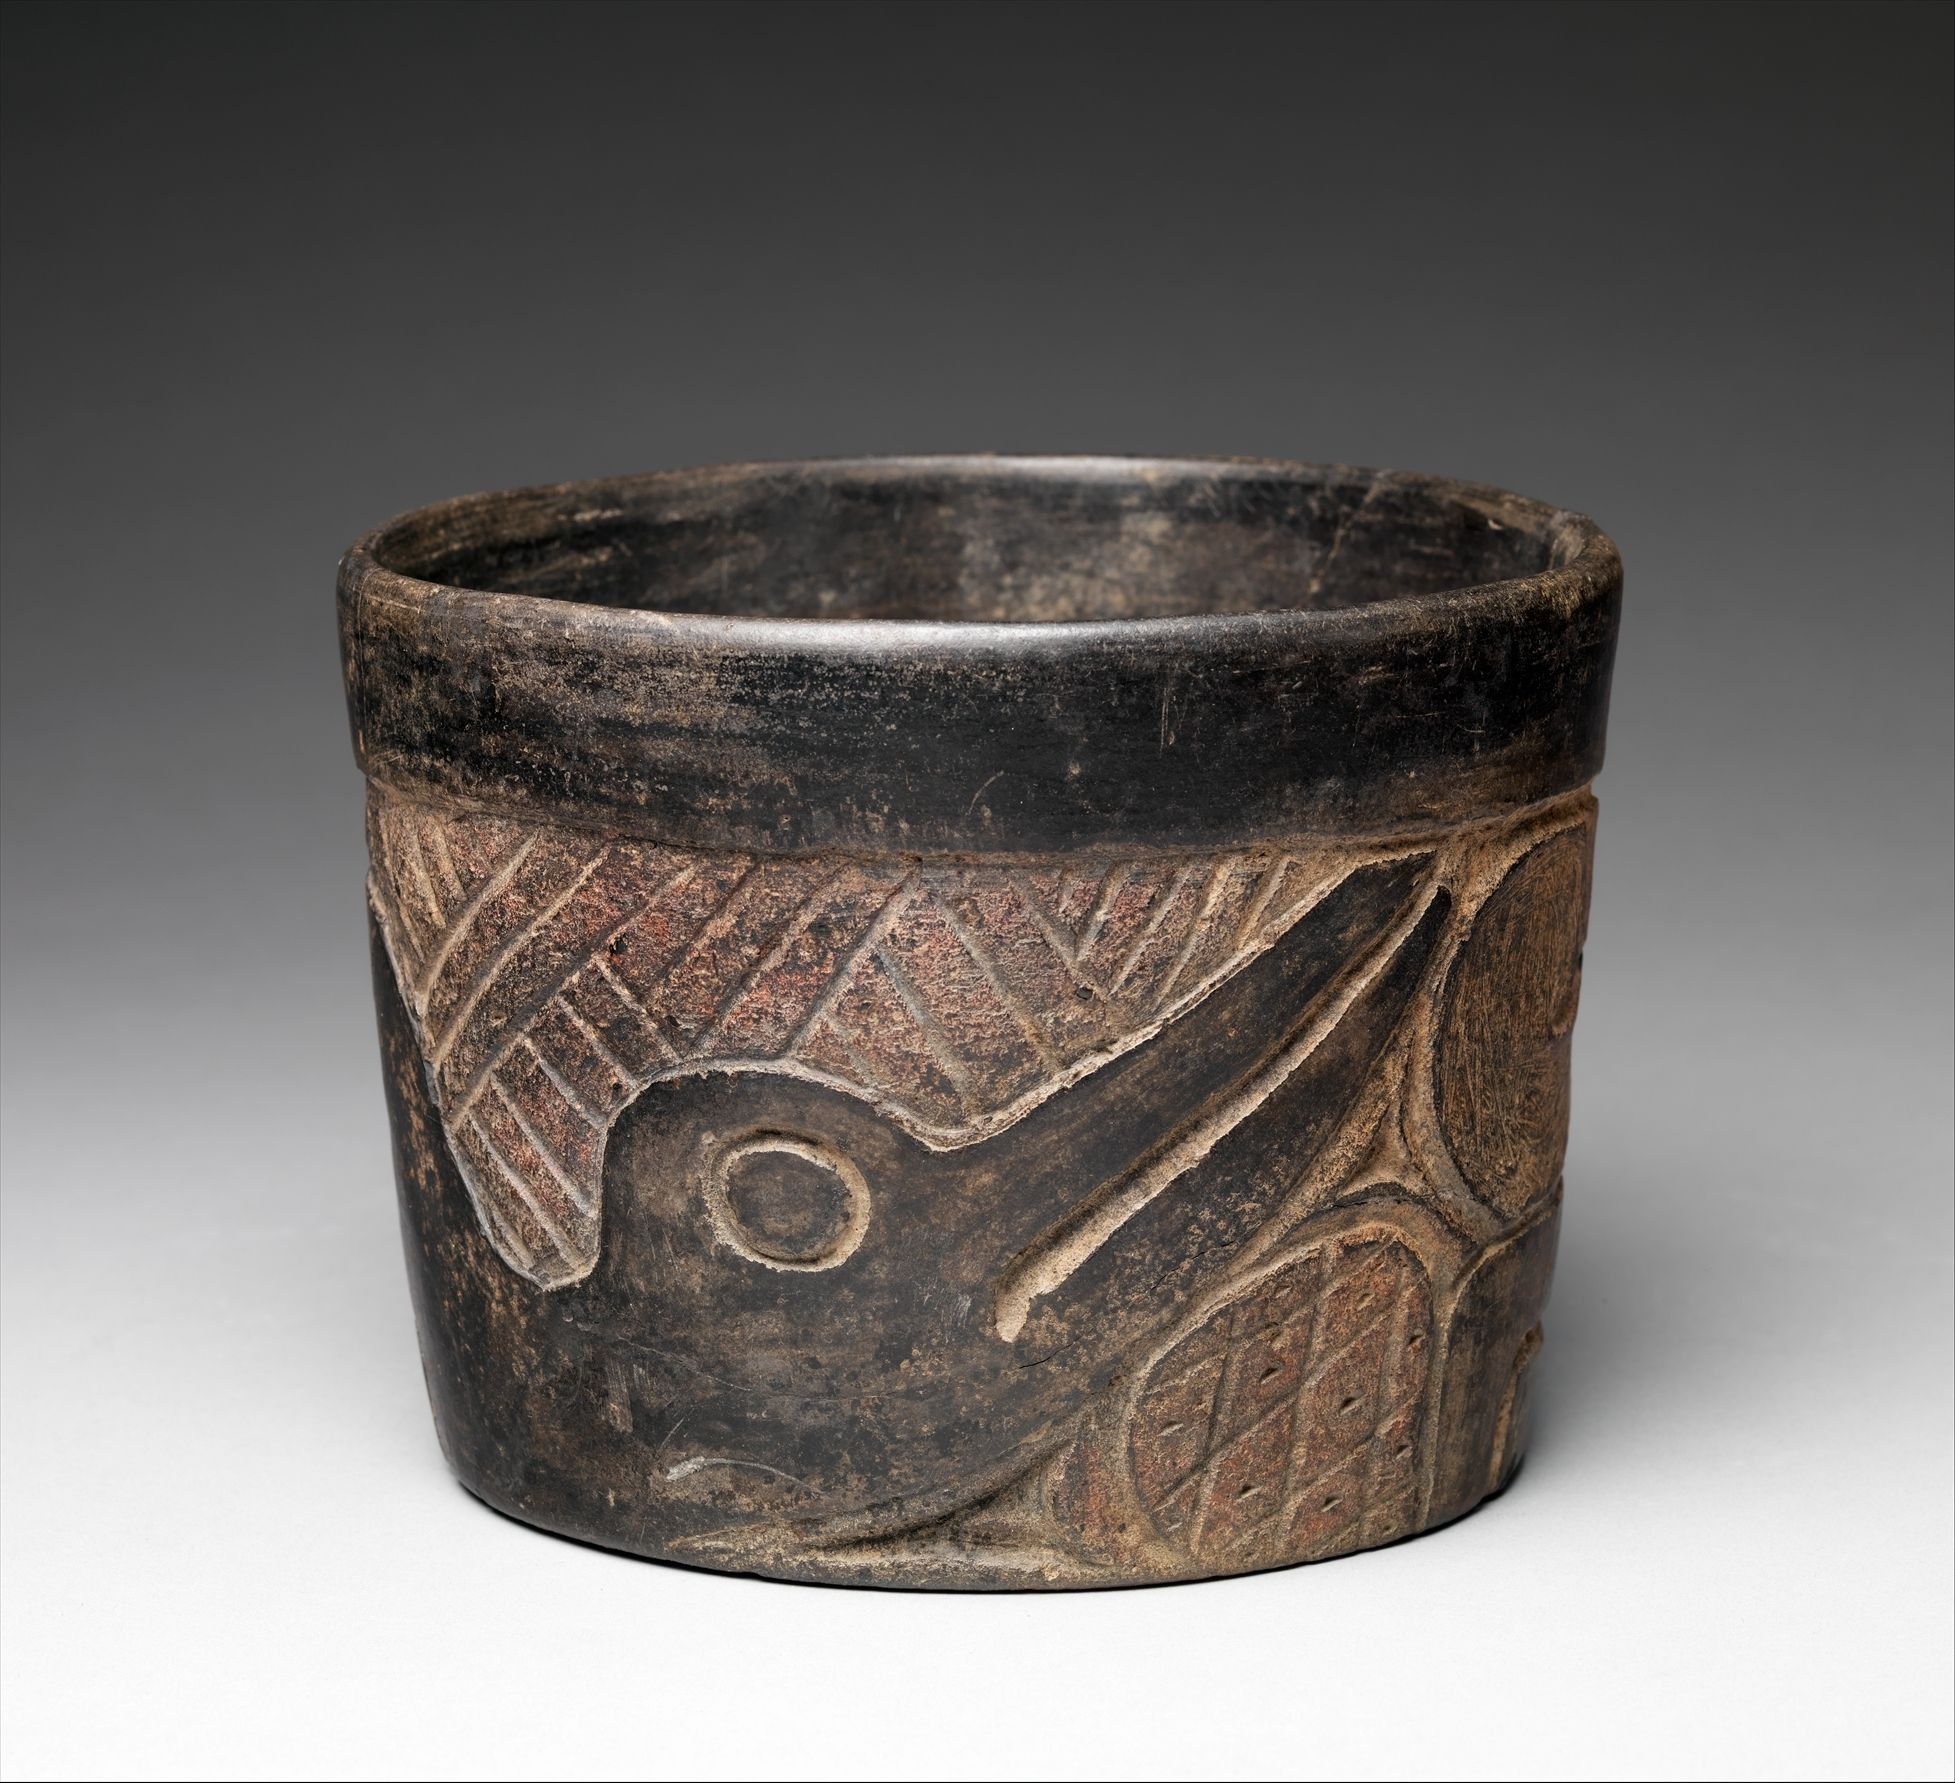 Relief-Carved Bowl,12th–9th century B.C. - Mexico, Mesoamerica Culture: Olmec, Ceramic